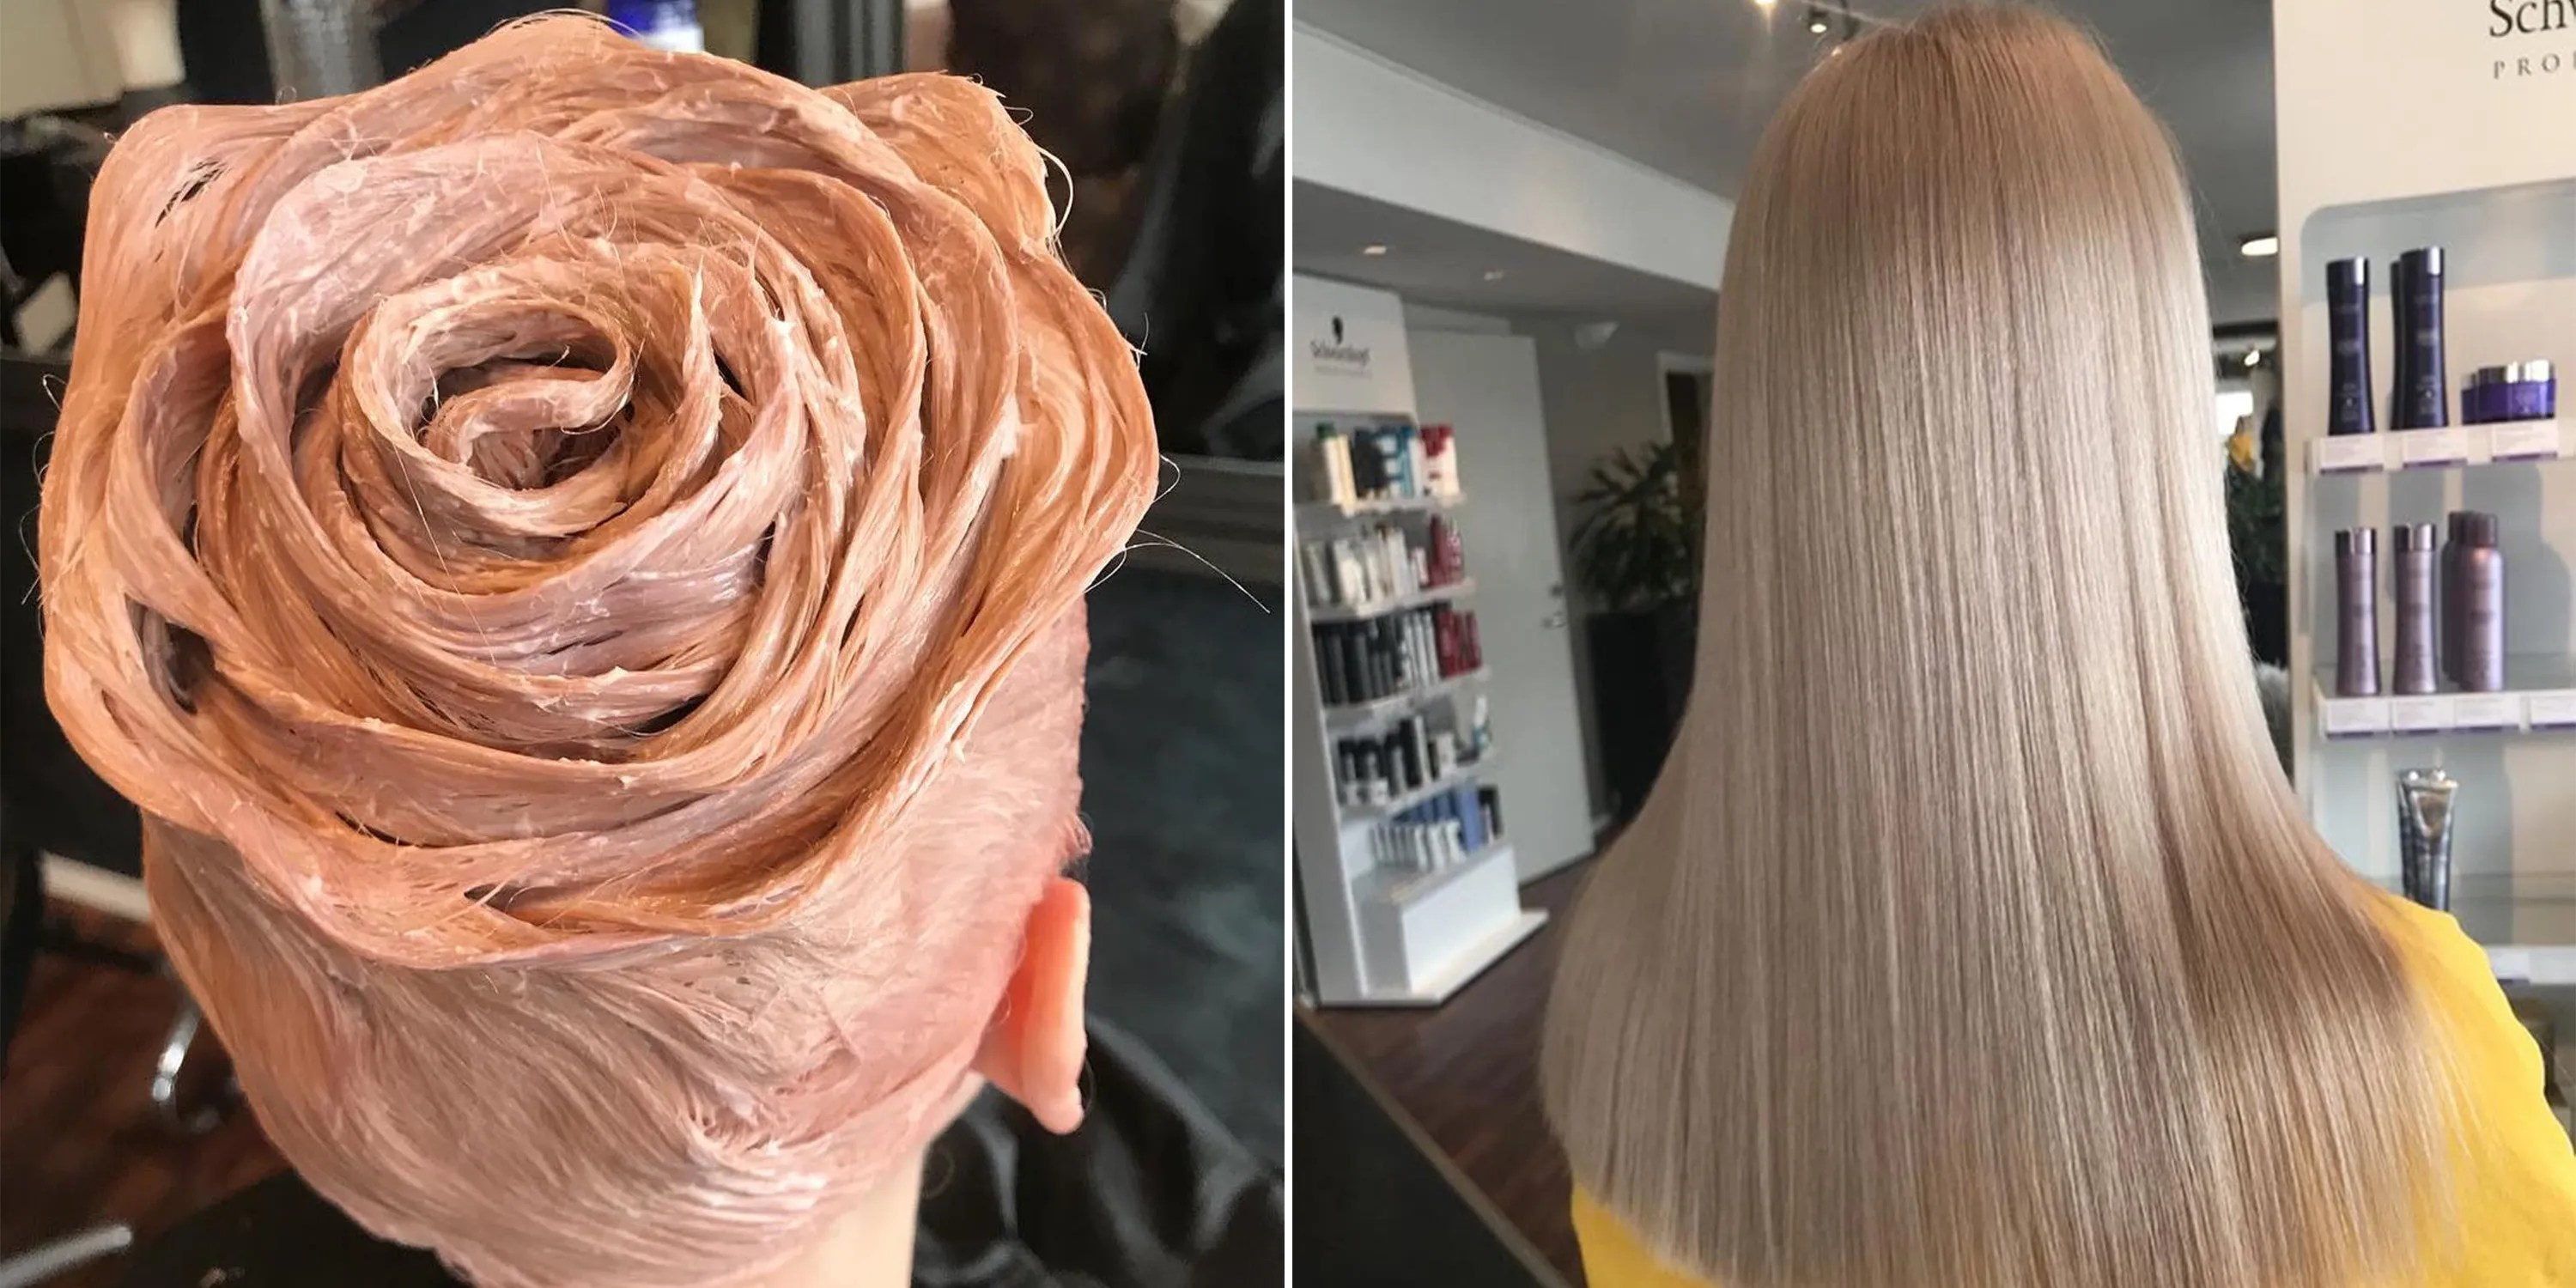 Photo Of Rose Gold Hair Shaped Into A Rose Goes Viral On